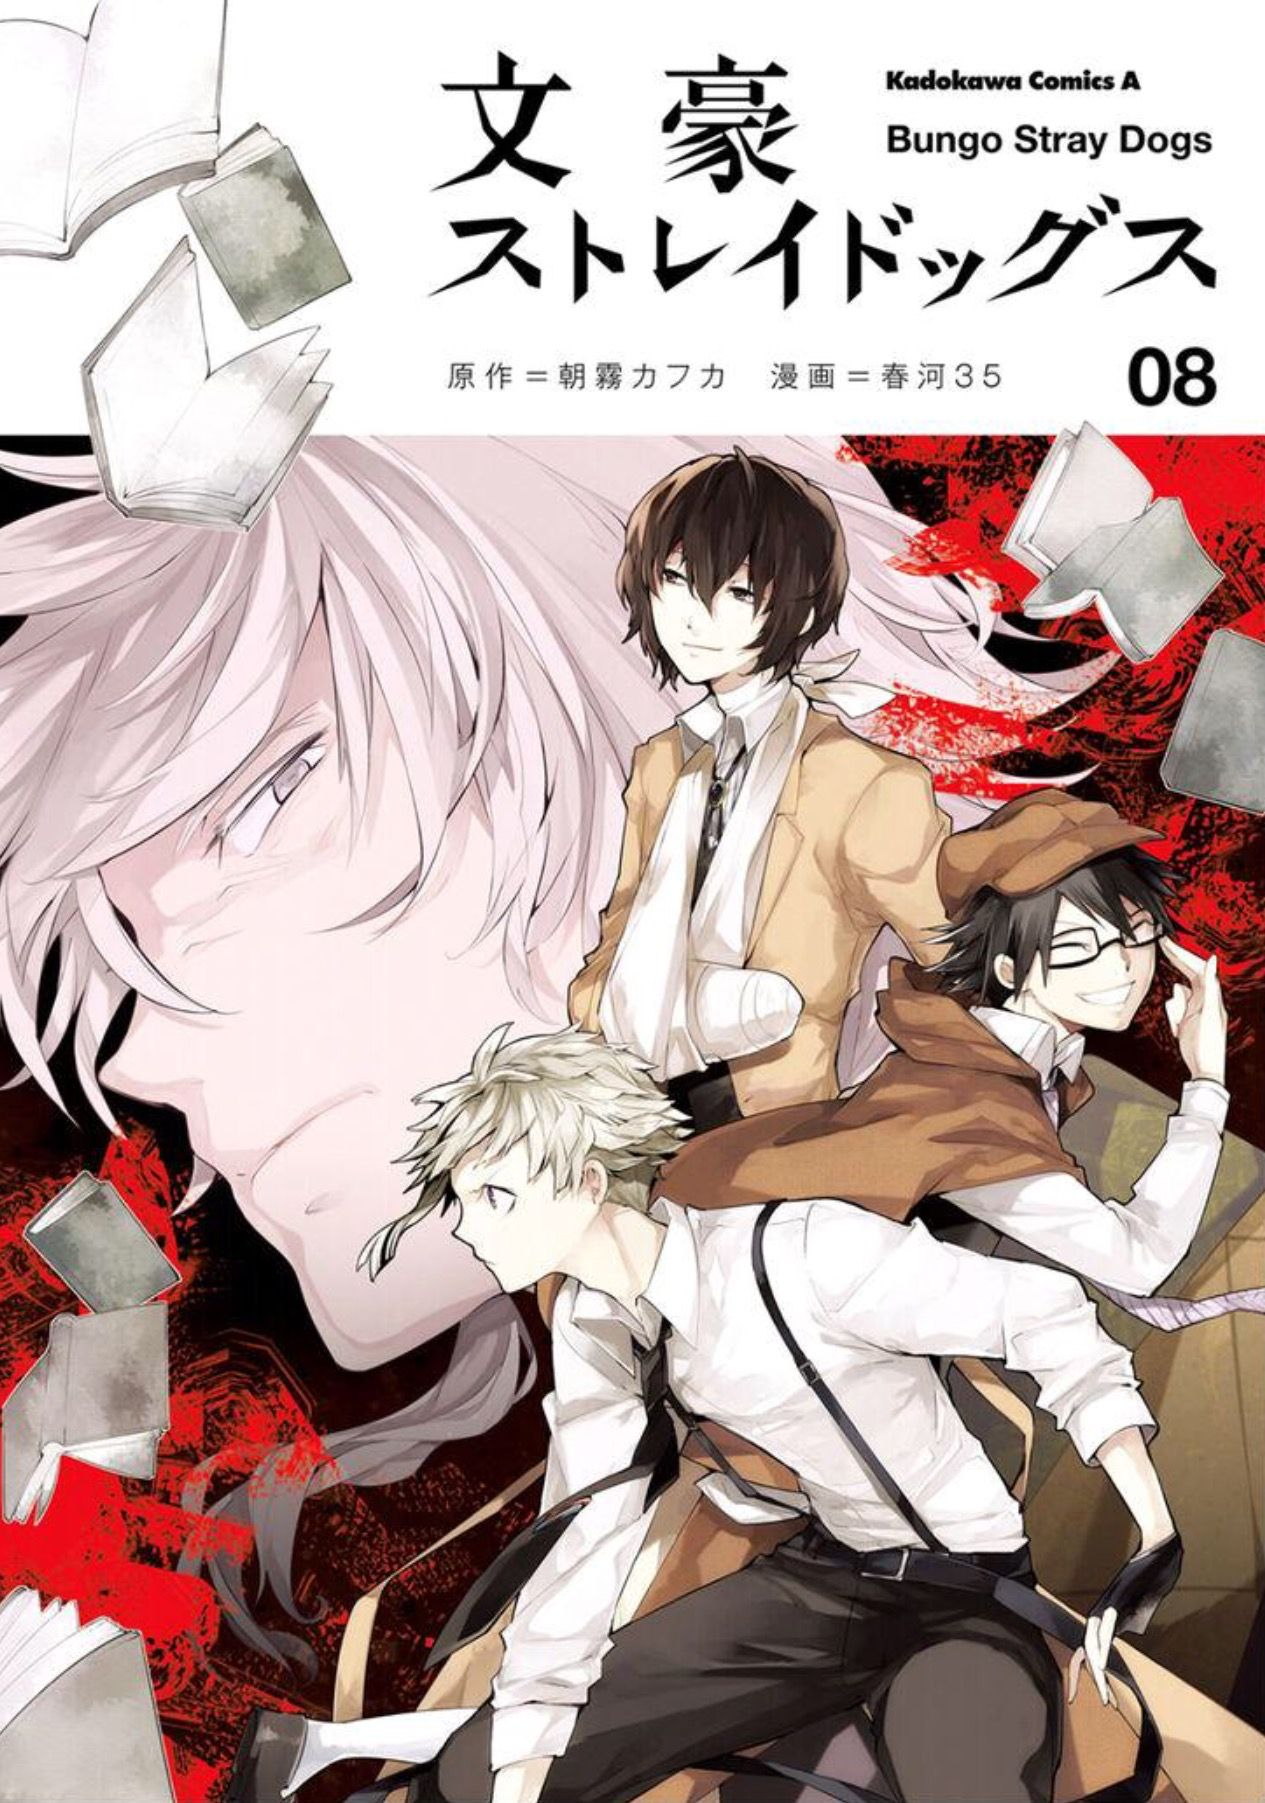 Pin by Jordan Vasquez on BSD (With images) Bungo stray